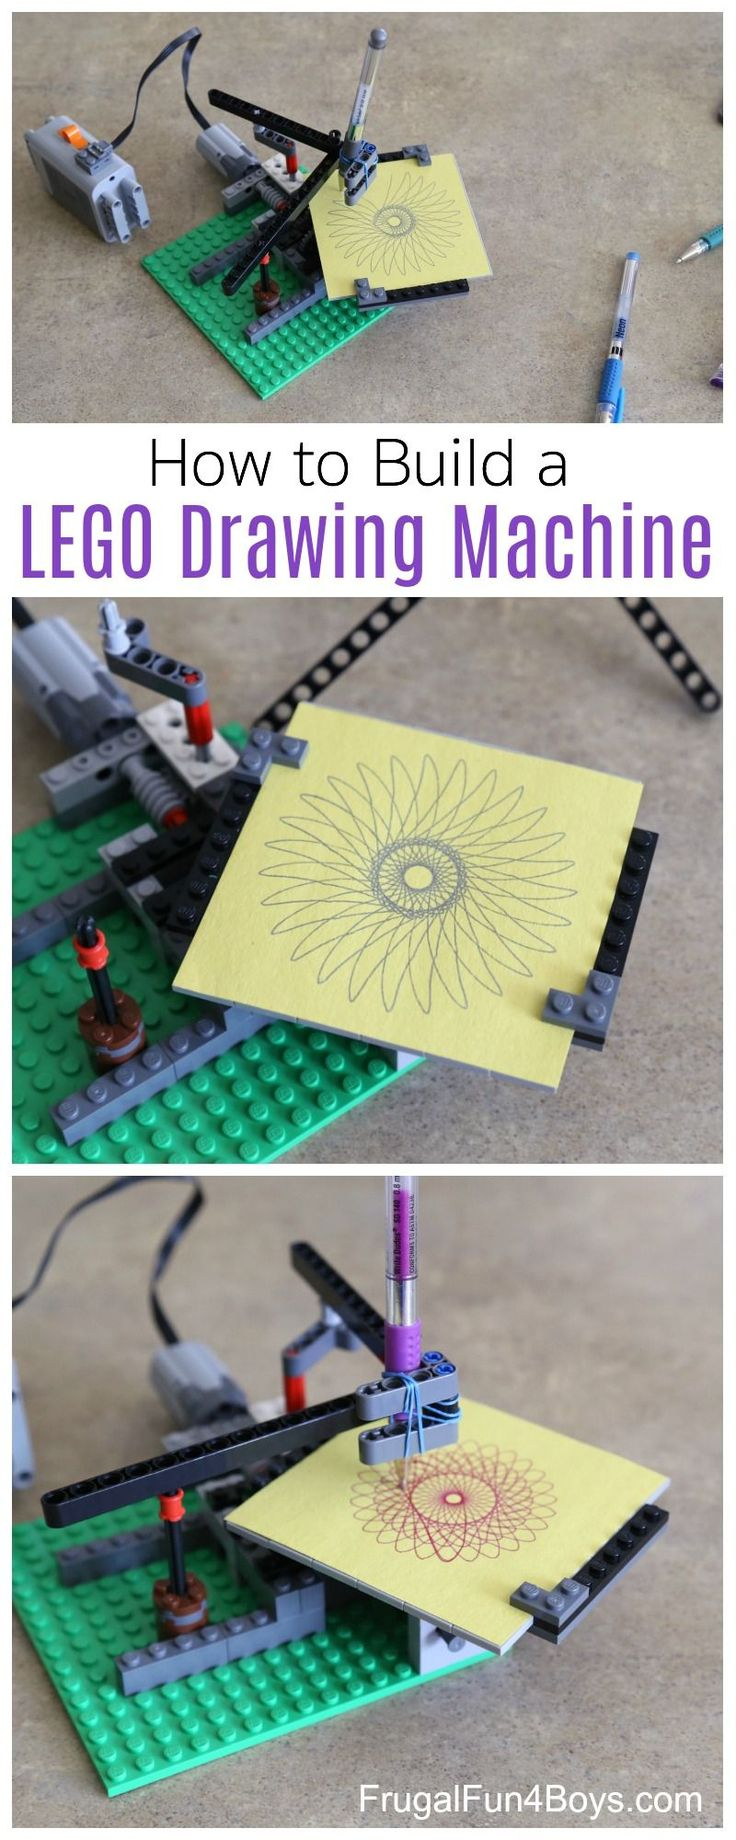 Build a LEGO Design Drawing Machine. Awesome engineering STEM challenge for kids!